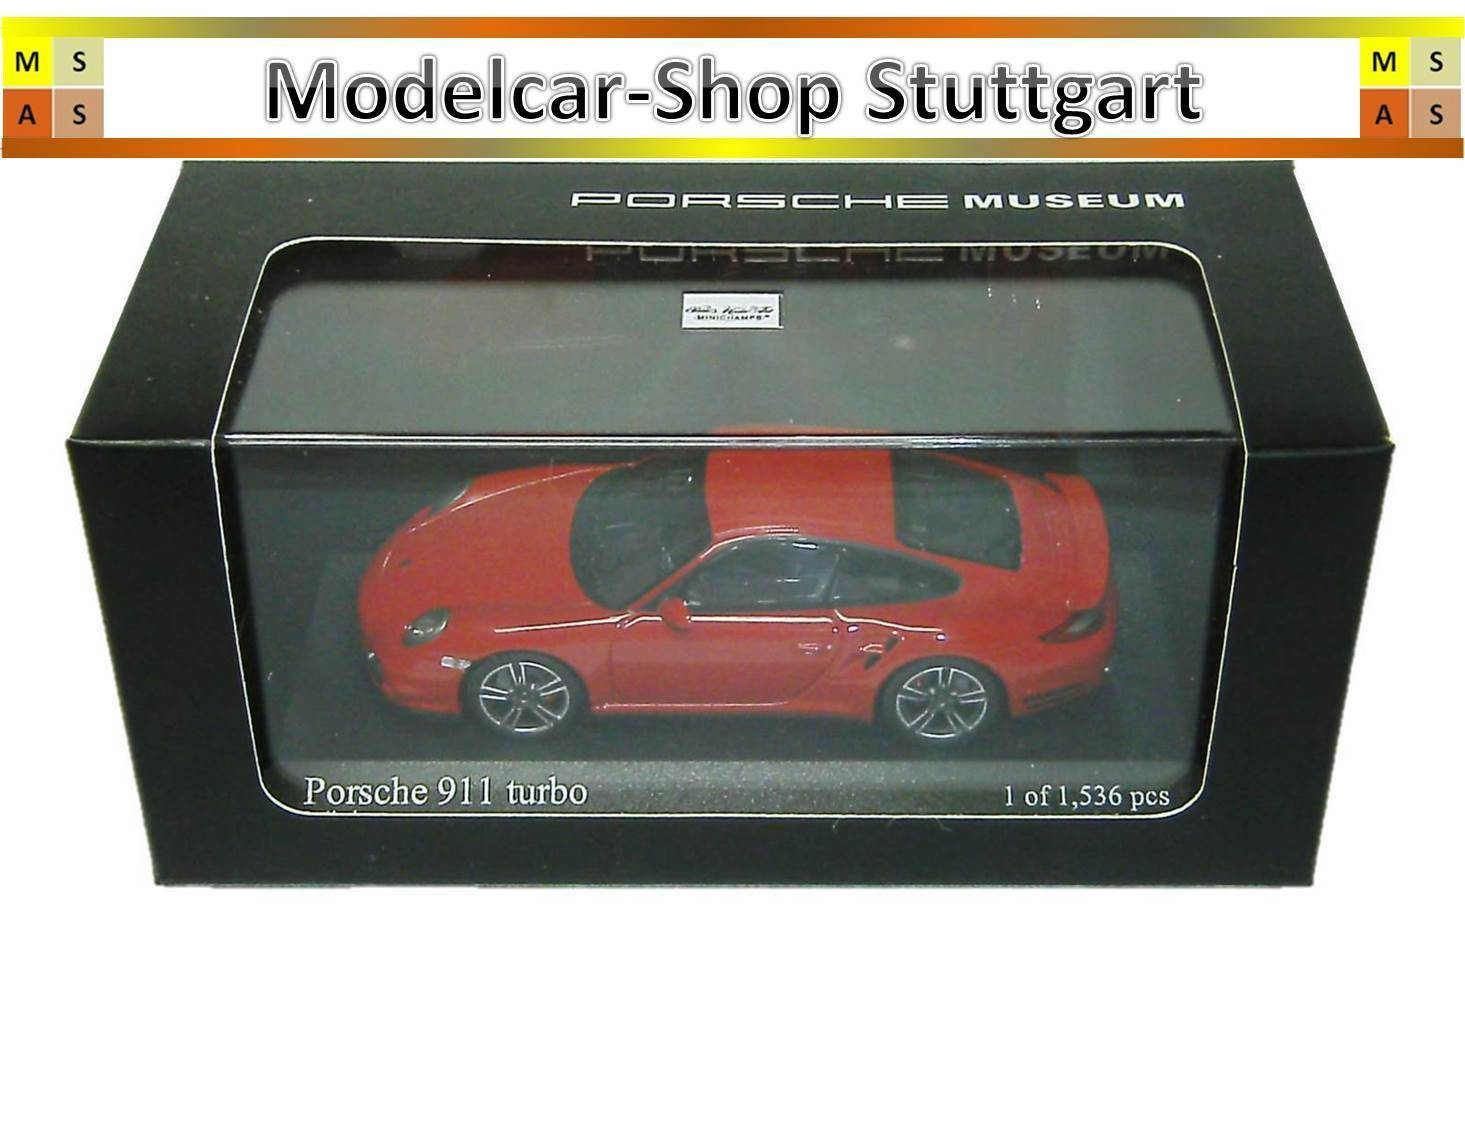 Porsche 911 Turbo Indischred Museum Edition Minichamps 1 43 map02036514 NEW